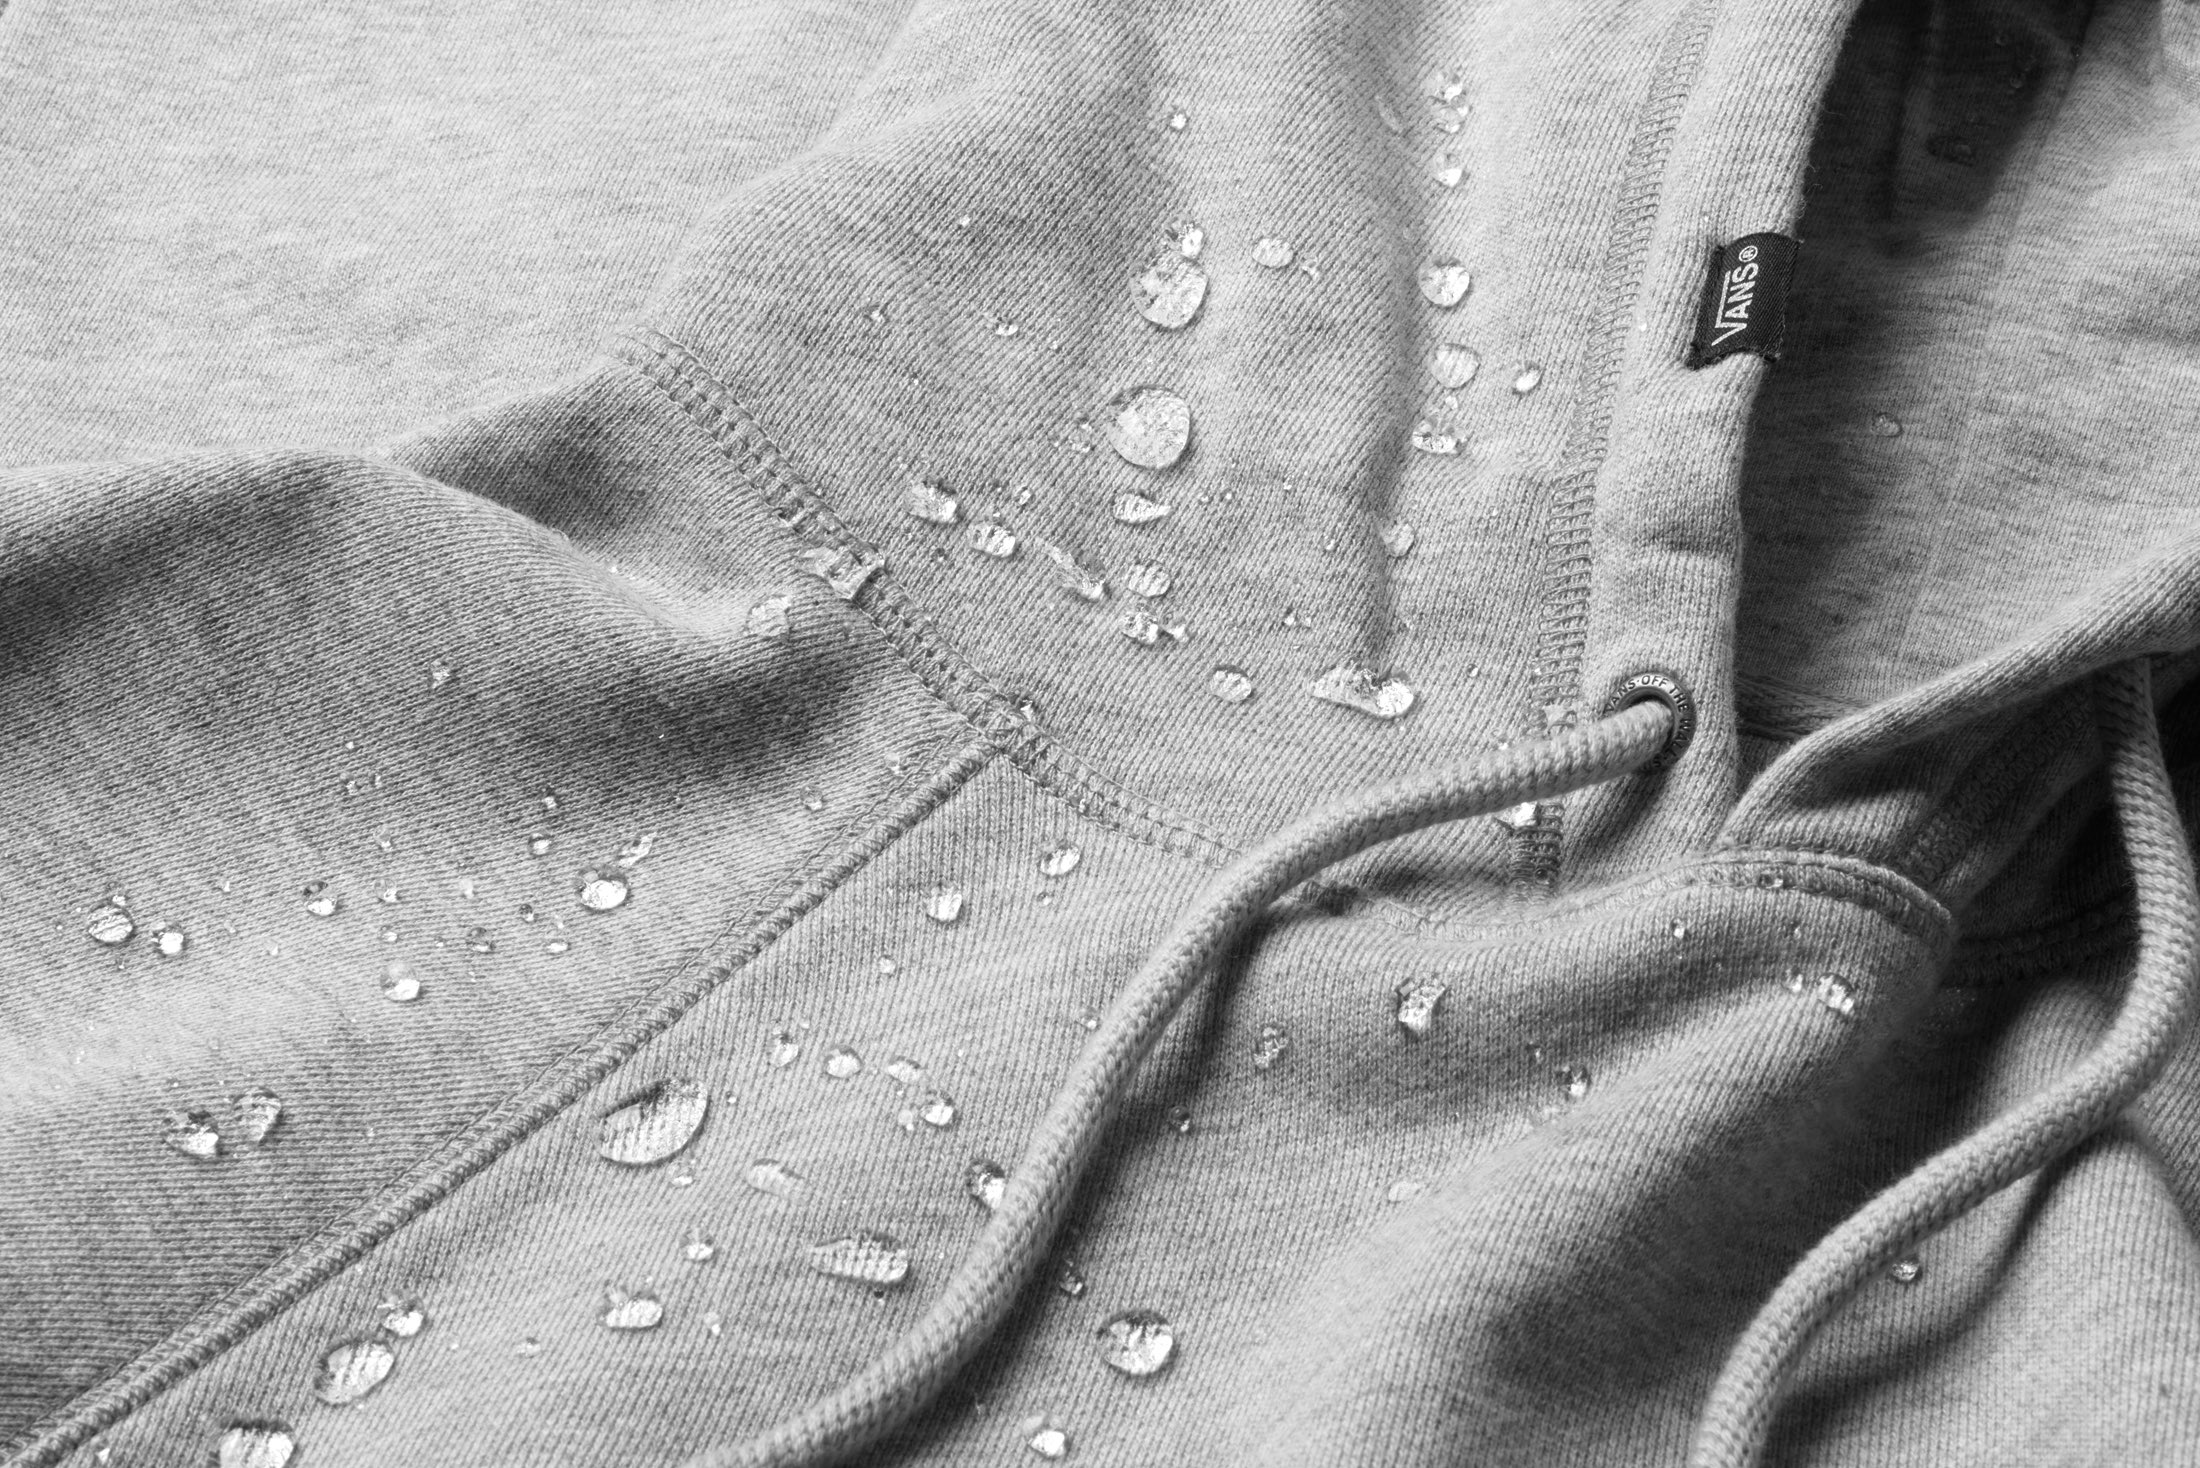 a271fea3d3 SP18 VN0A3H5M02F VERSA HOODIE FABRIC DETAIL WATER DROPLETS MACRO-HEAVY copy